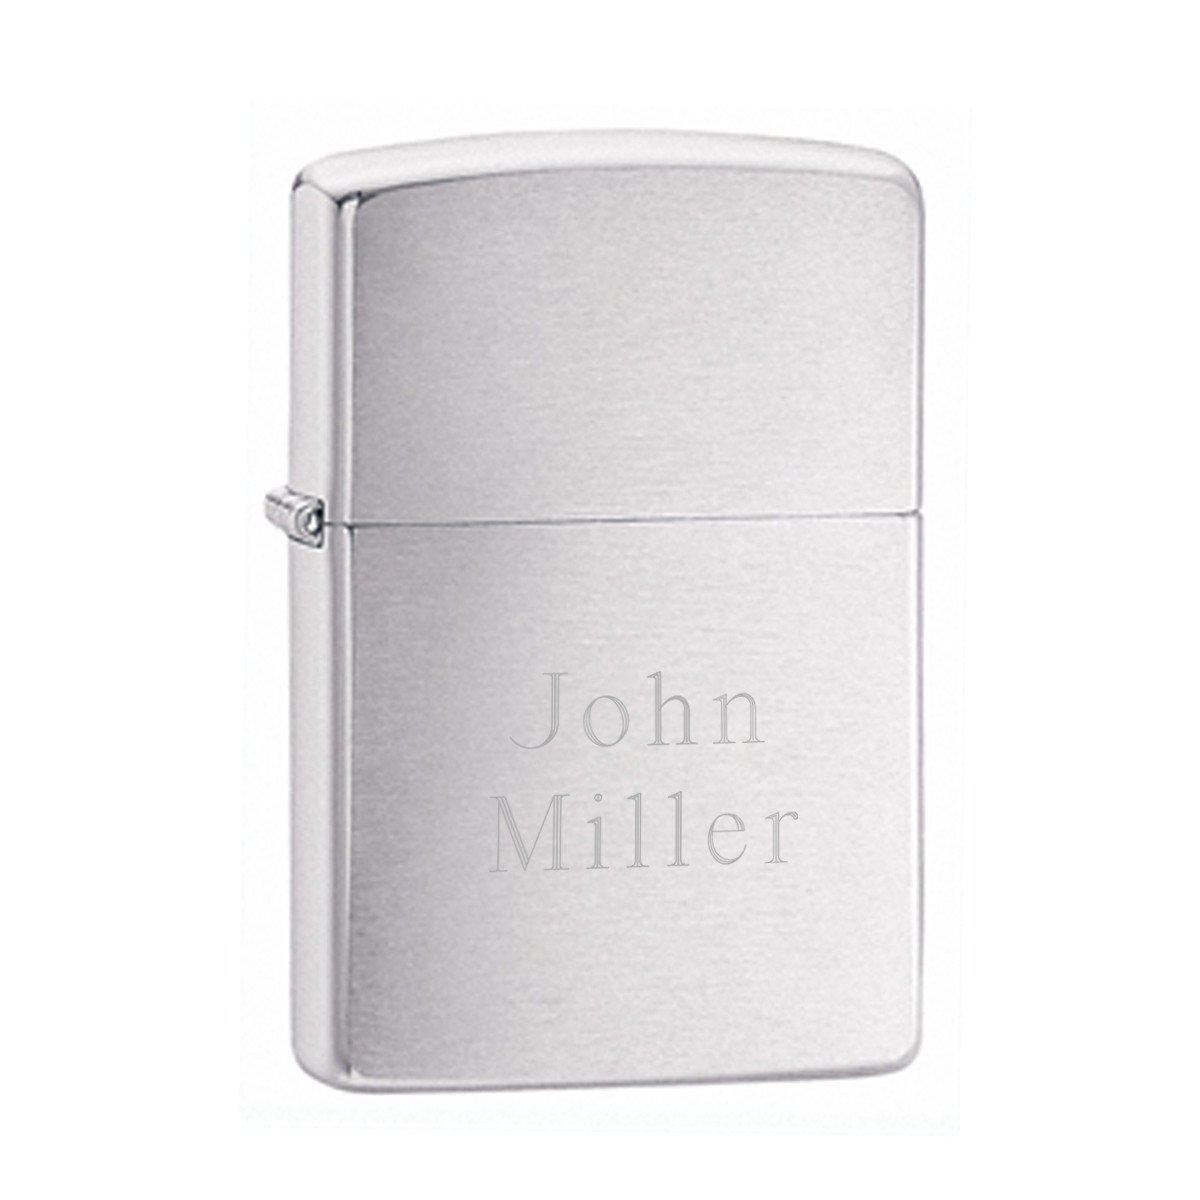 Personalized-Lighters-Zippo-Brushed-Chrome